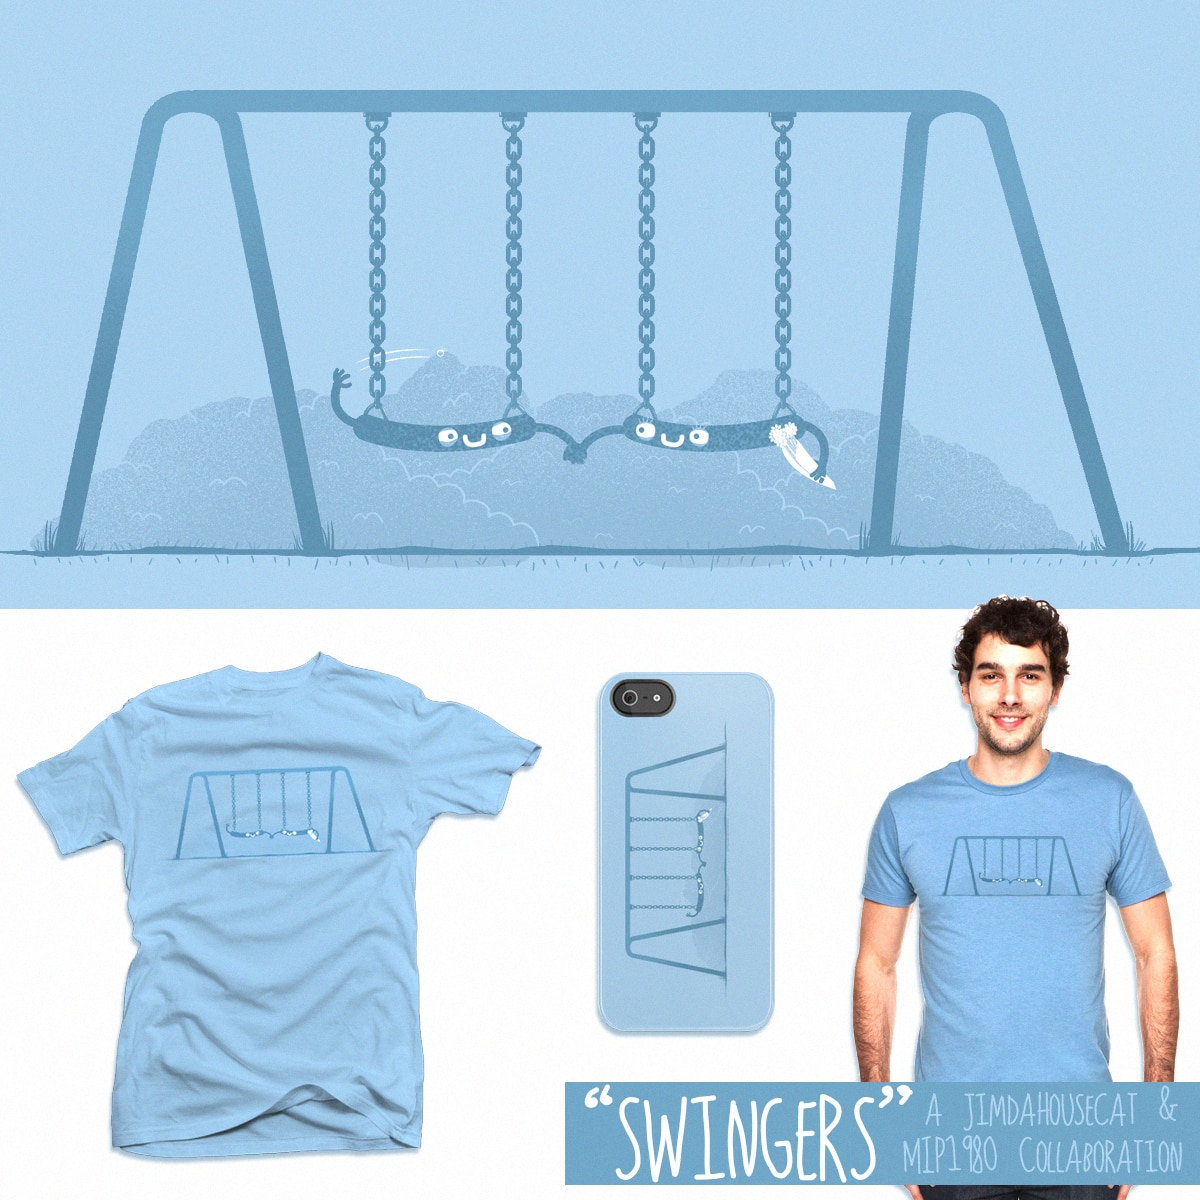 Swingers by JIMDAHOUSECAT and mip1980 on Threadless